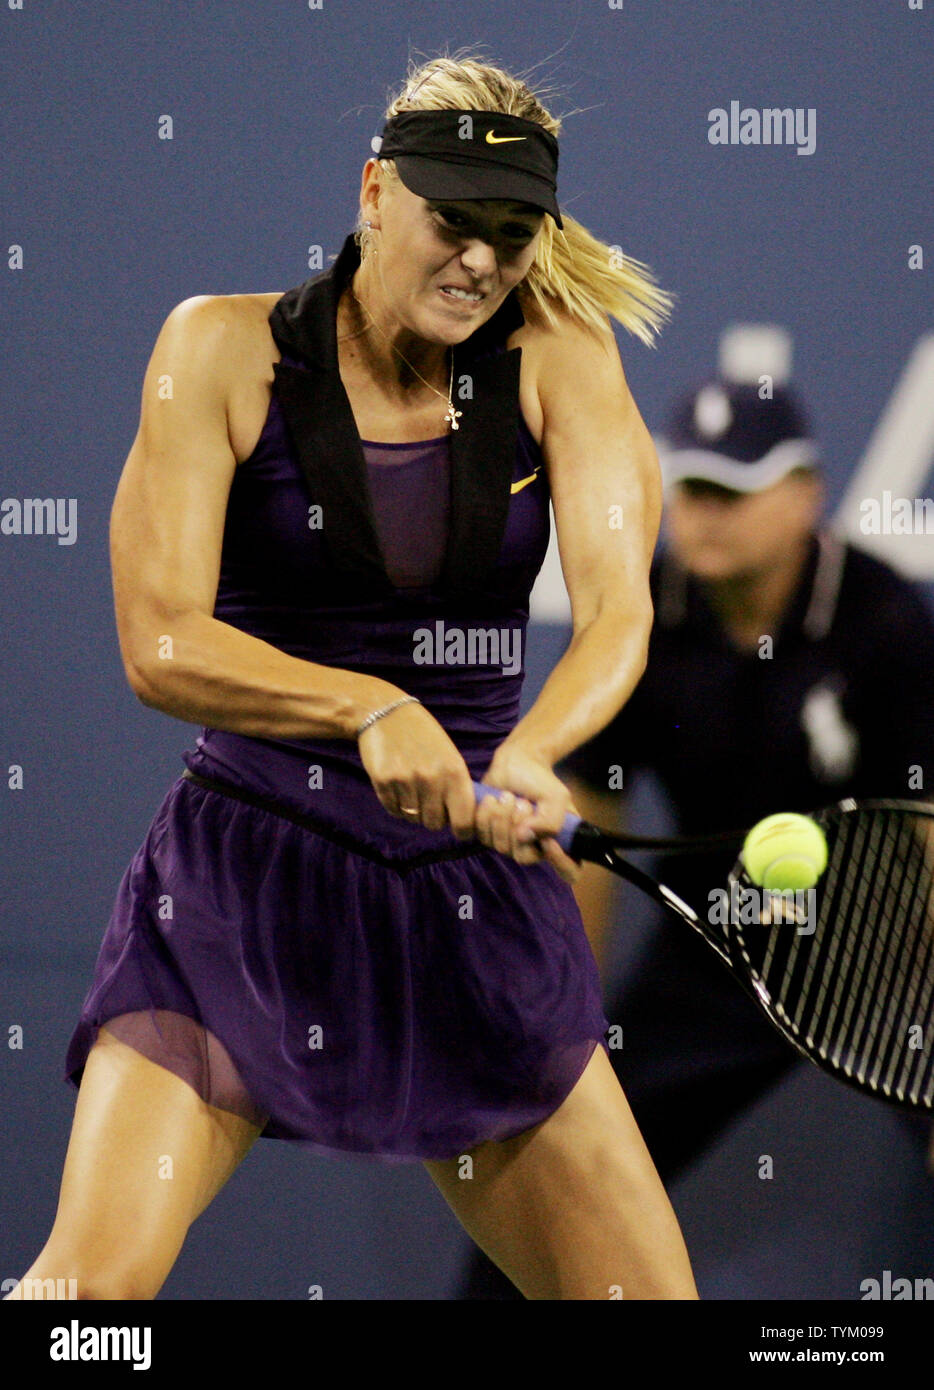 Maria Sharapova of Russia returns the ball to Iveta Benesova of the Czech Republic during second-round action at the U.S. Open held at the National Tennis Center on September 2, 2010 in New York.     UPI Photo/Monika Graff... - Stock Image